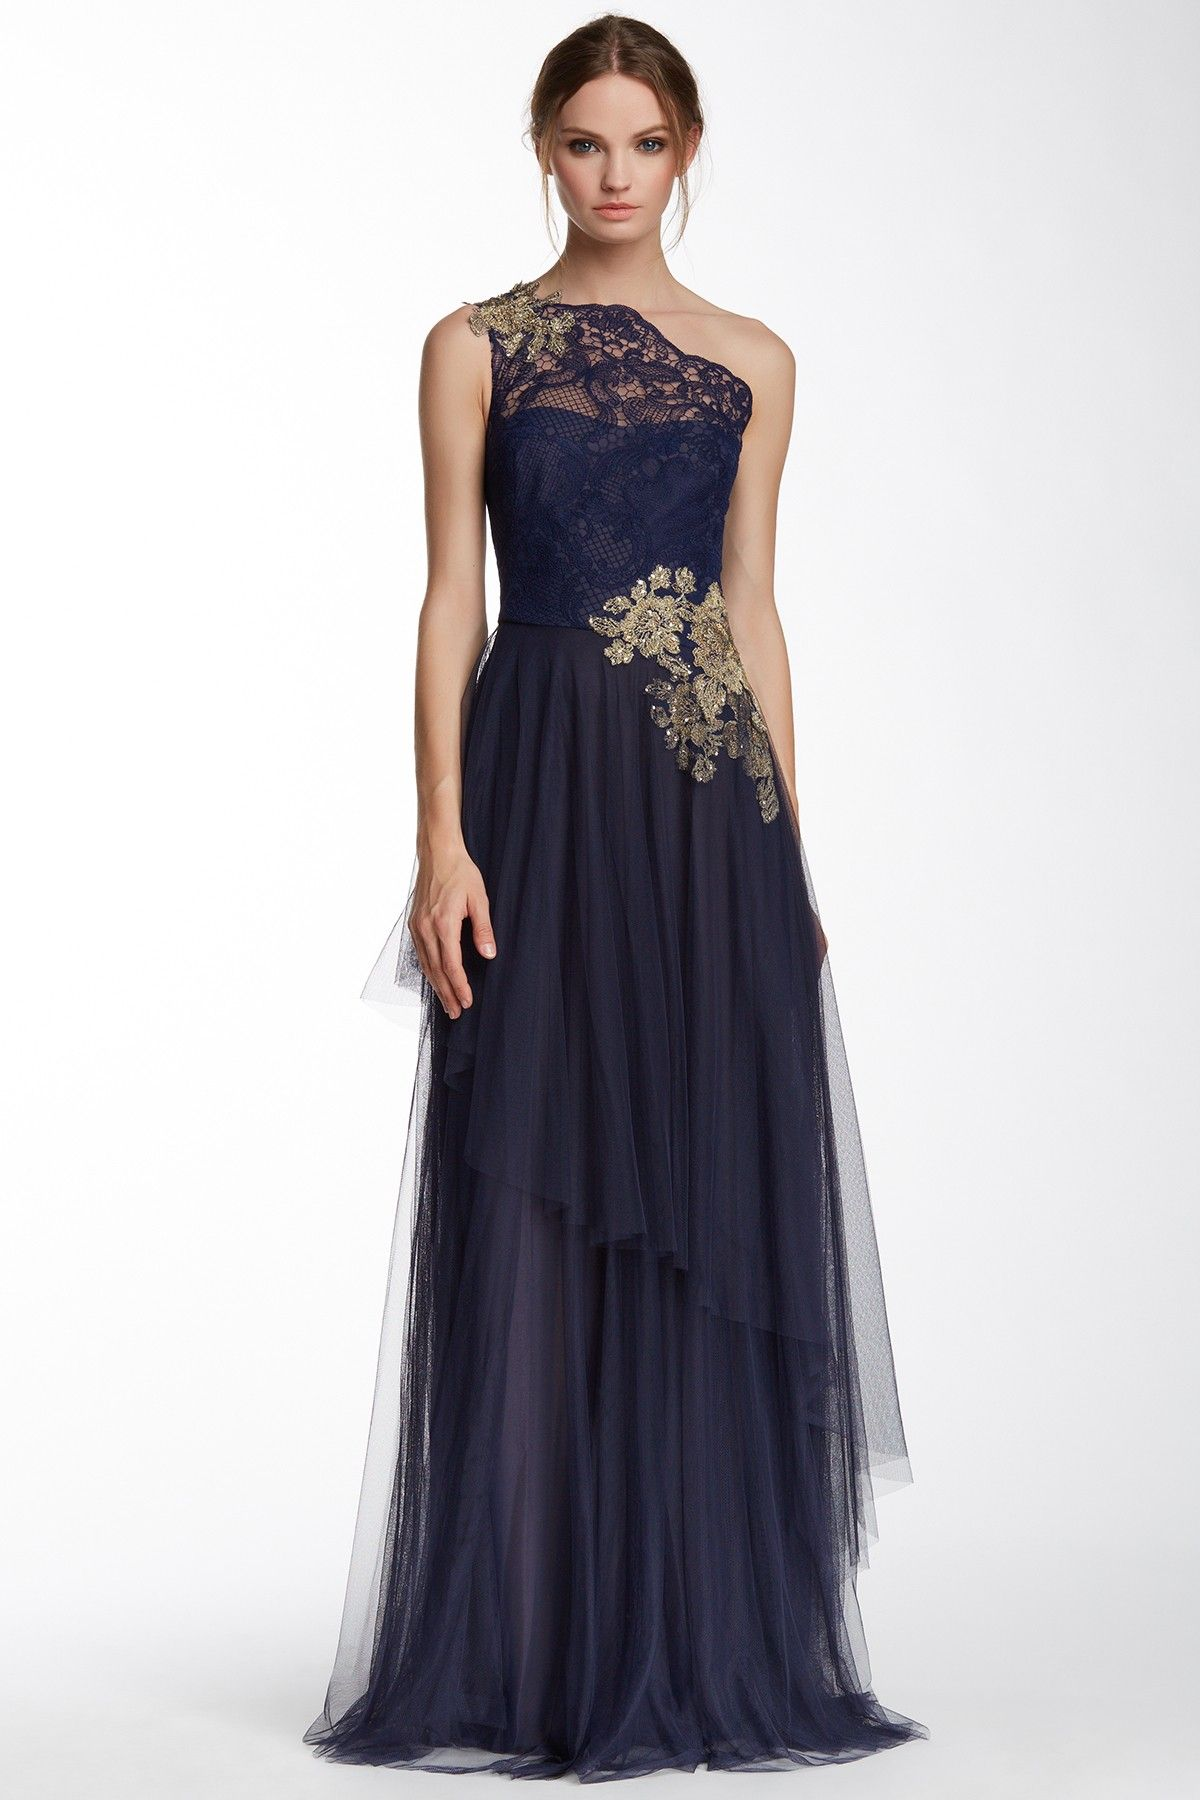 Marchesa Notte | One Shoulder Embroidered Detail Gown | Marchesa ...